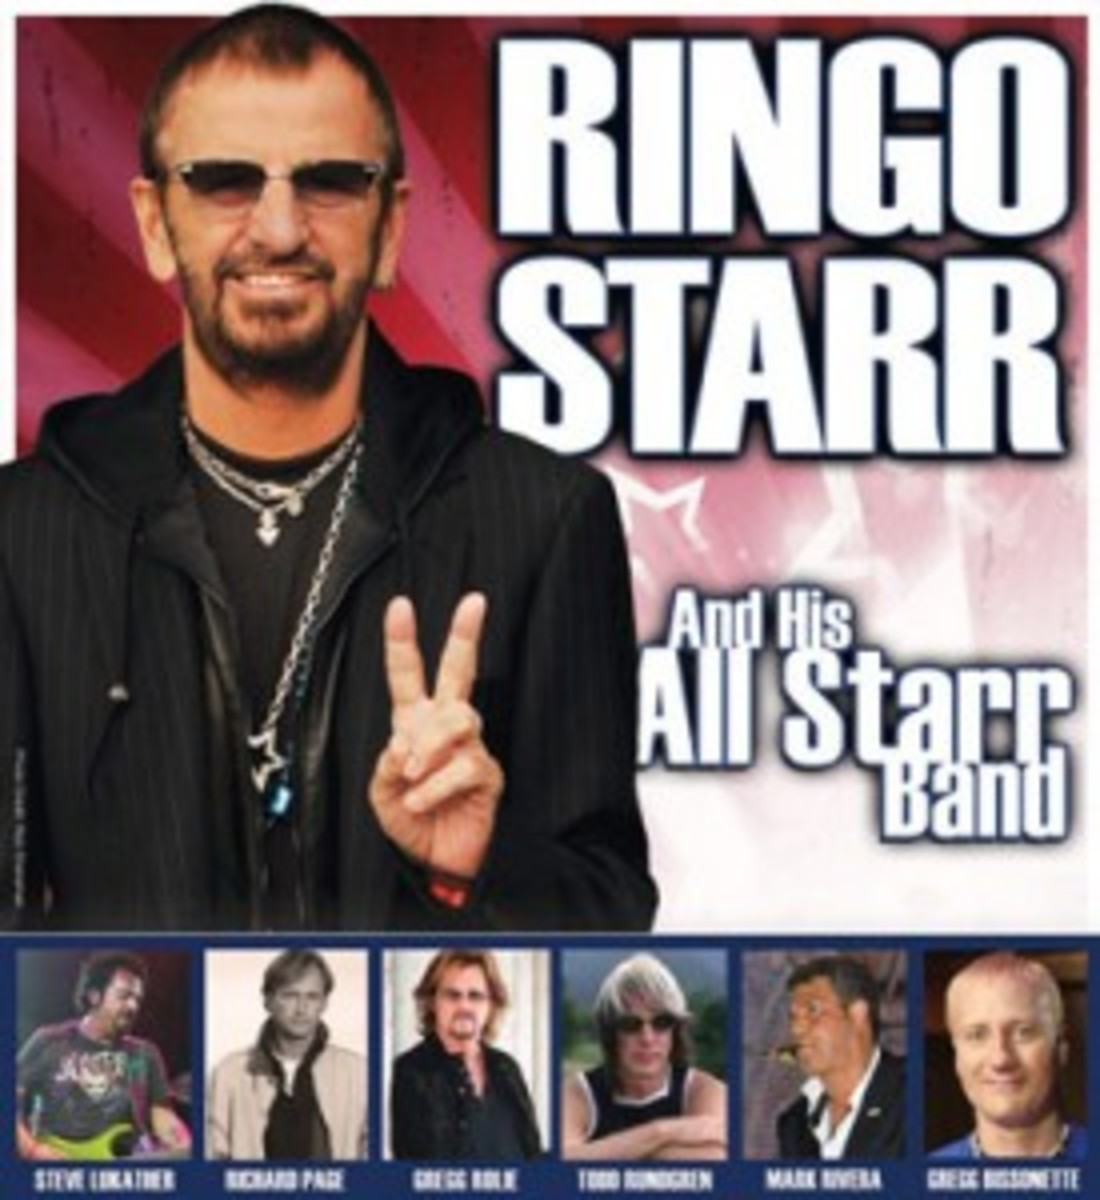 Ringo Starr and His All Starr Band 2012